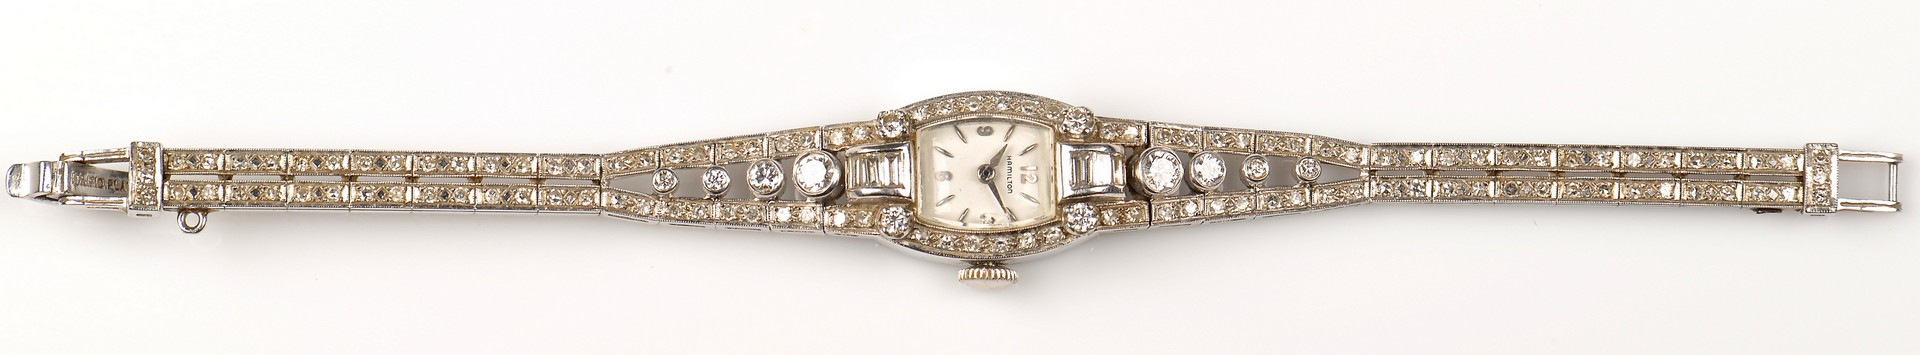 Lot 79: Platinum Hamilton Lady's Diamond Watch